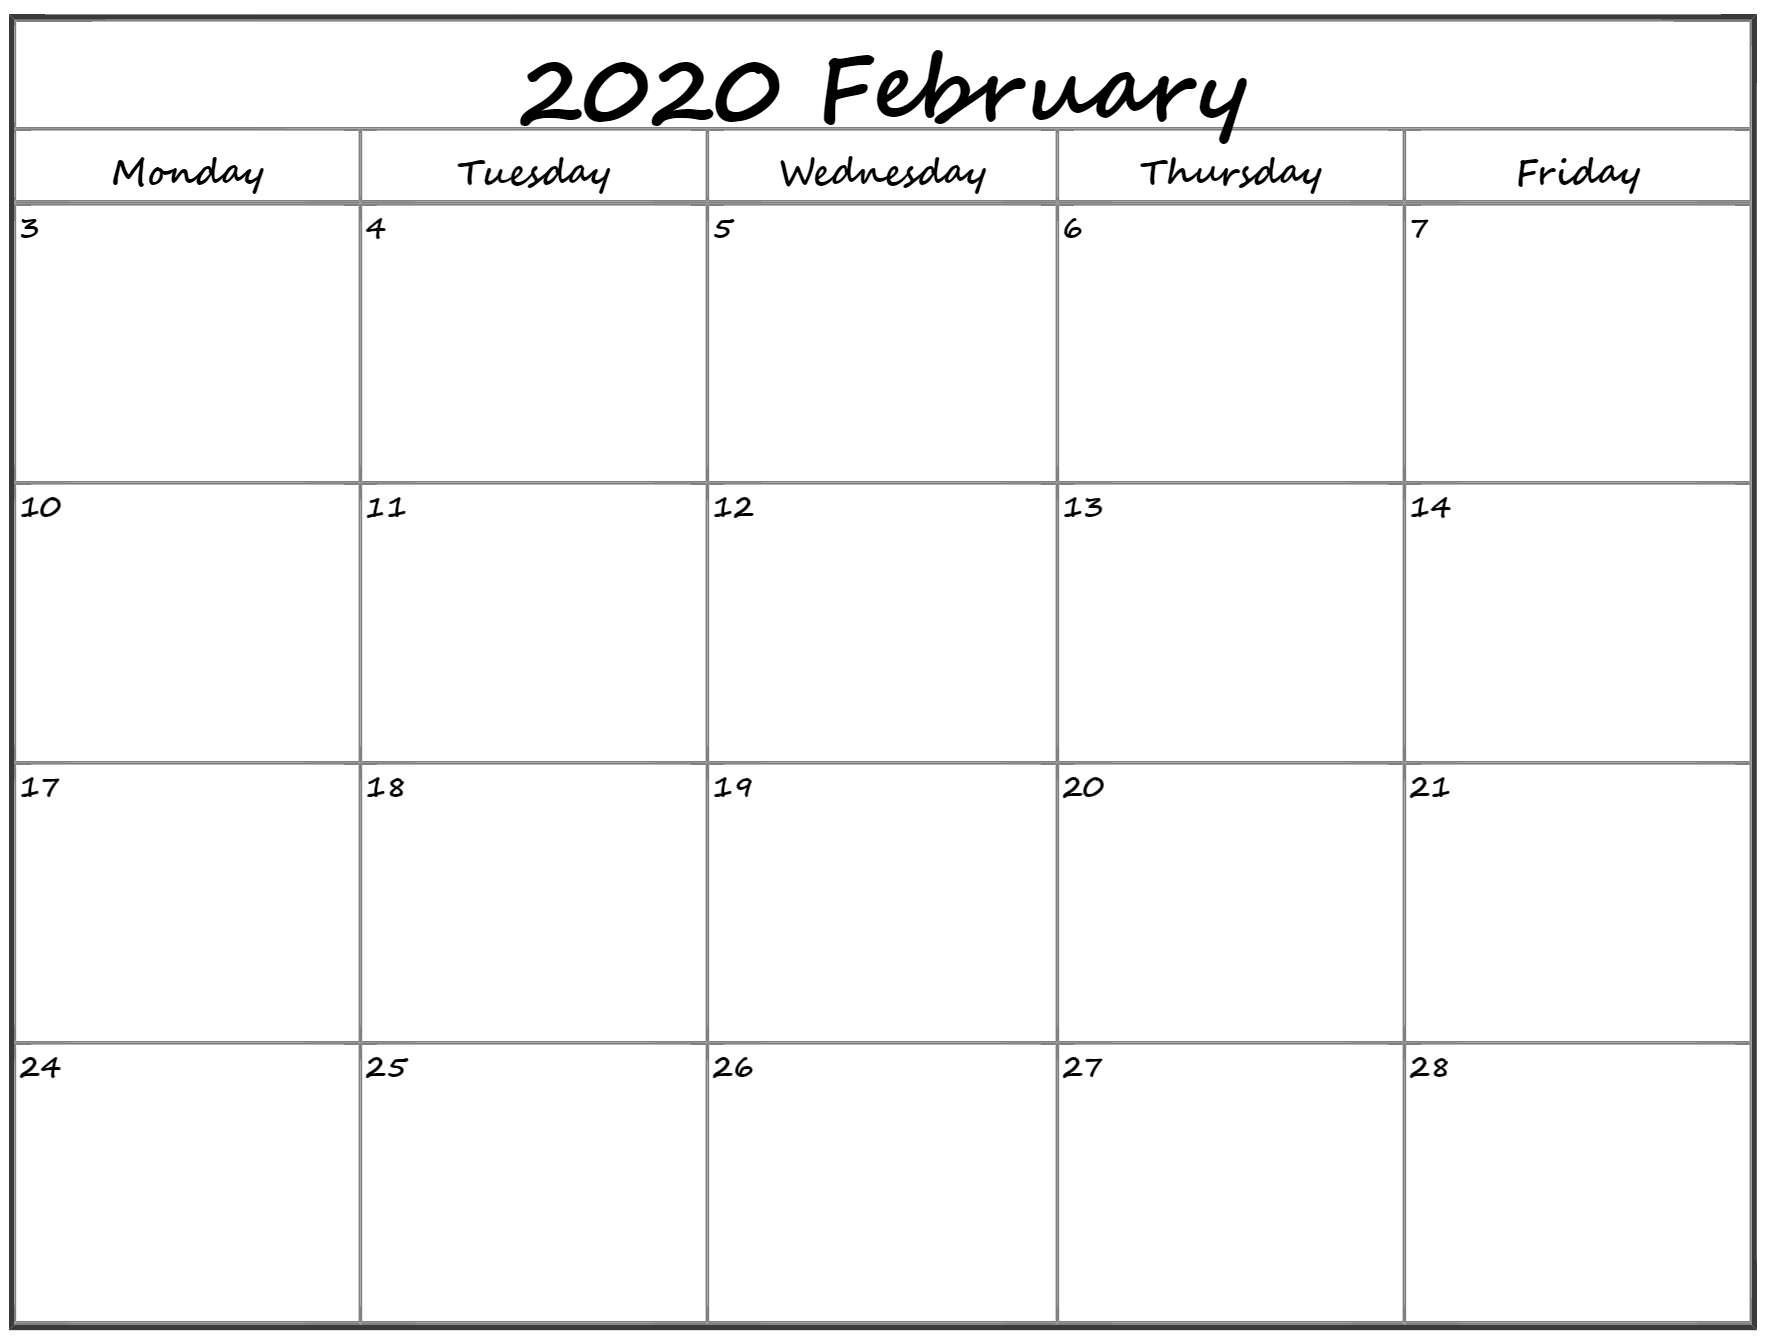 February 2020 Monday Calendar | Monday To Sunday Free Printable Calendar Monday To Friday